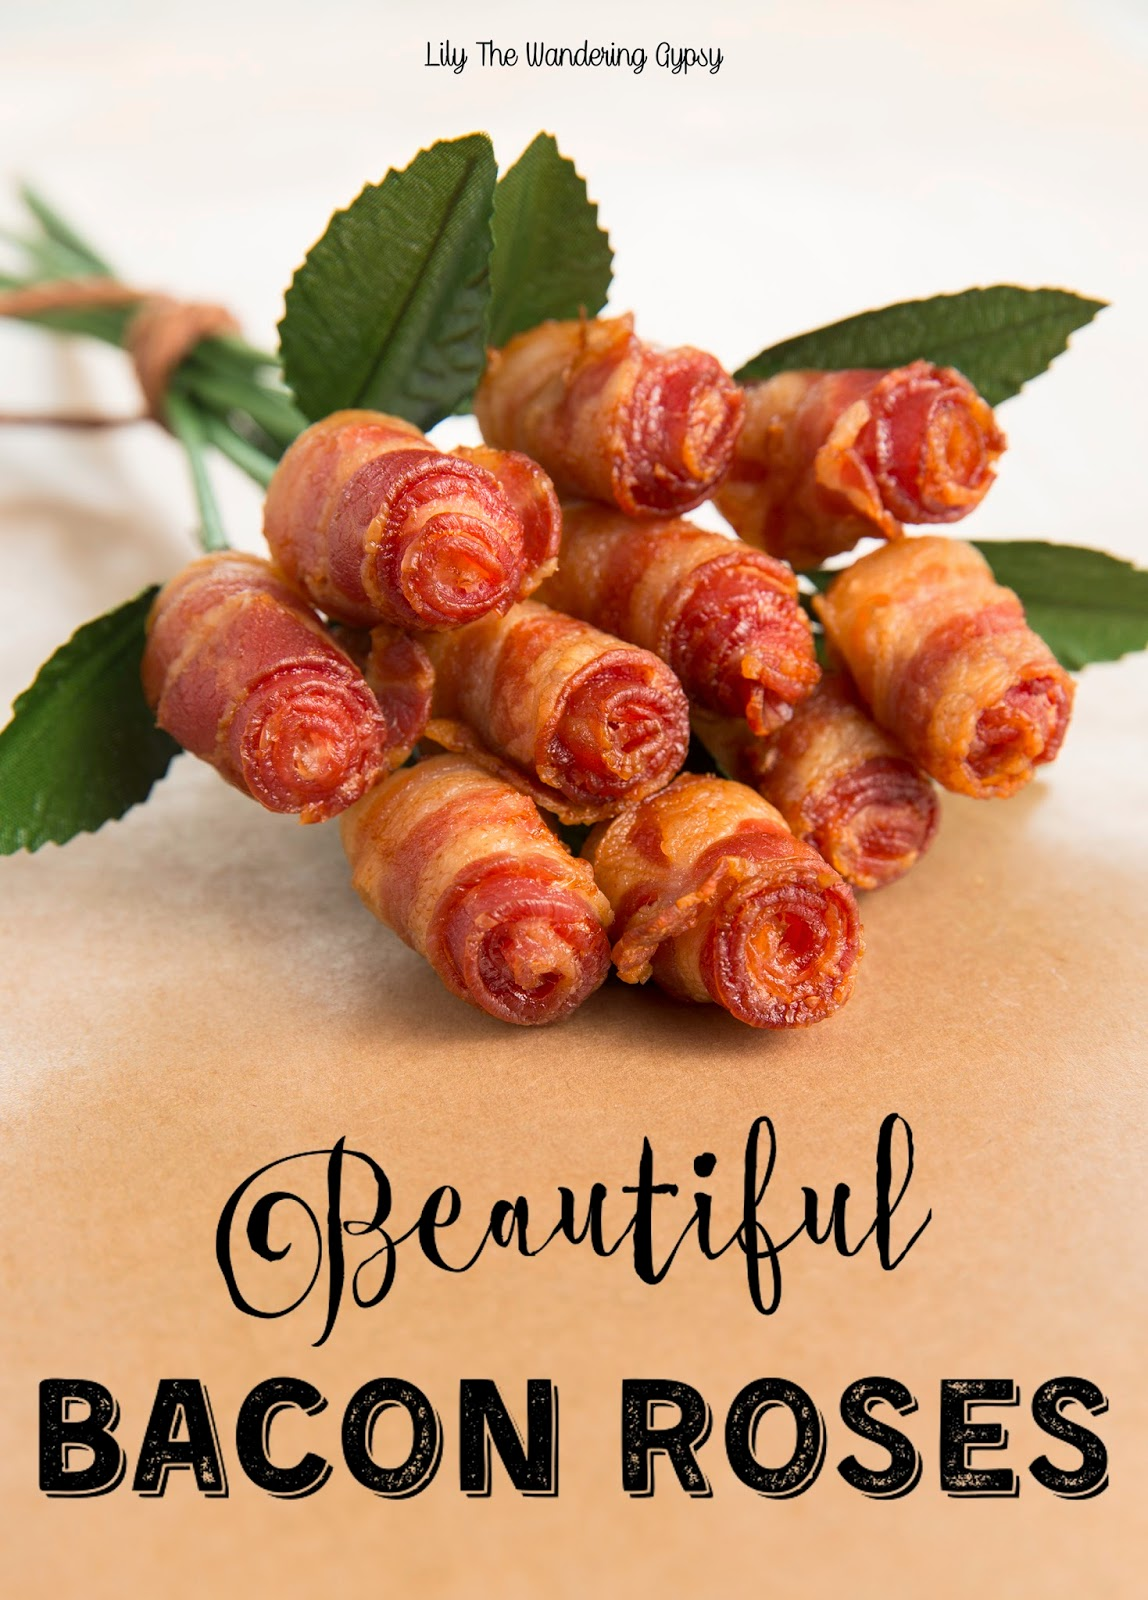 Lily The Wandering Gypsy A Bouquet Of Bacon Roses